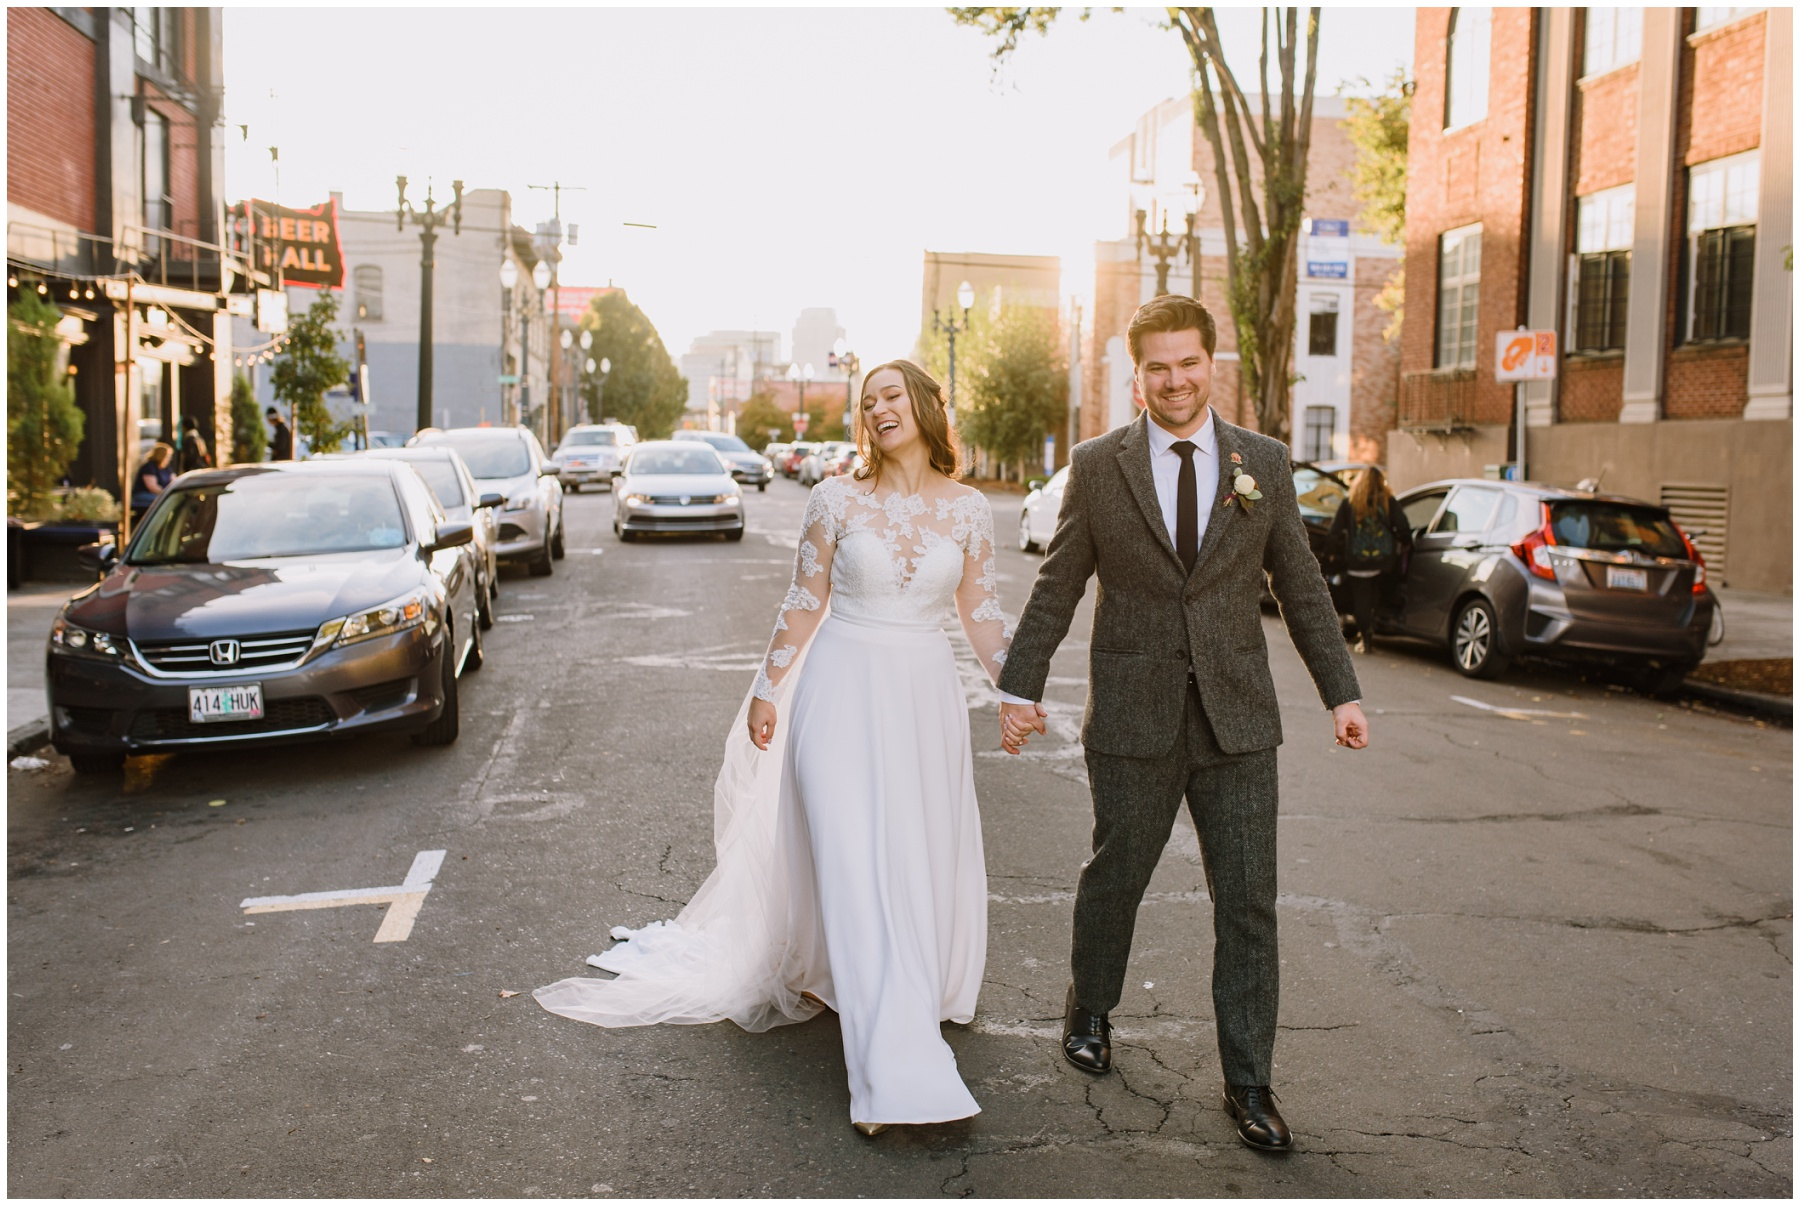 A bride and groom walking in the street at sunset outside the Evergreen Portland